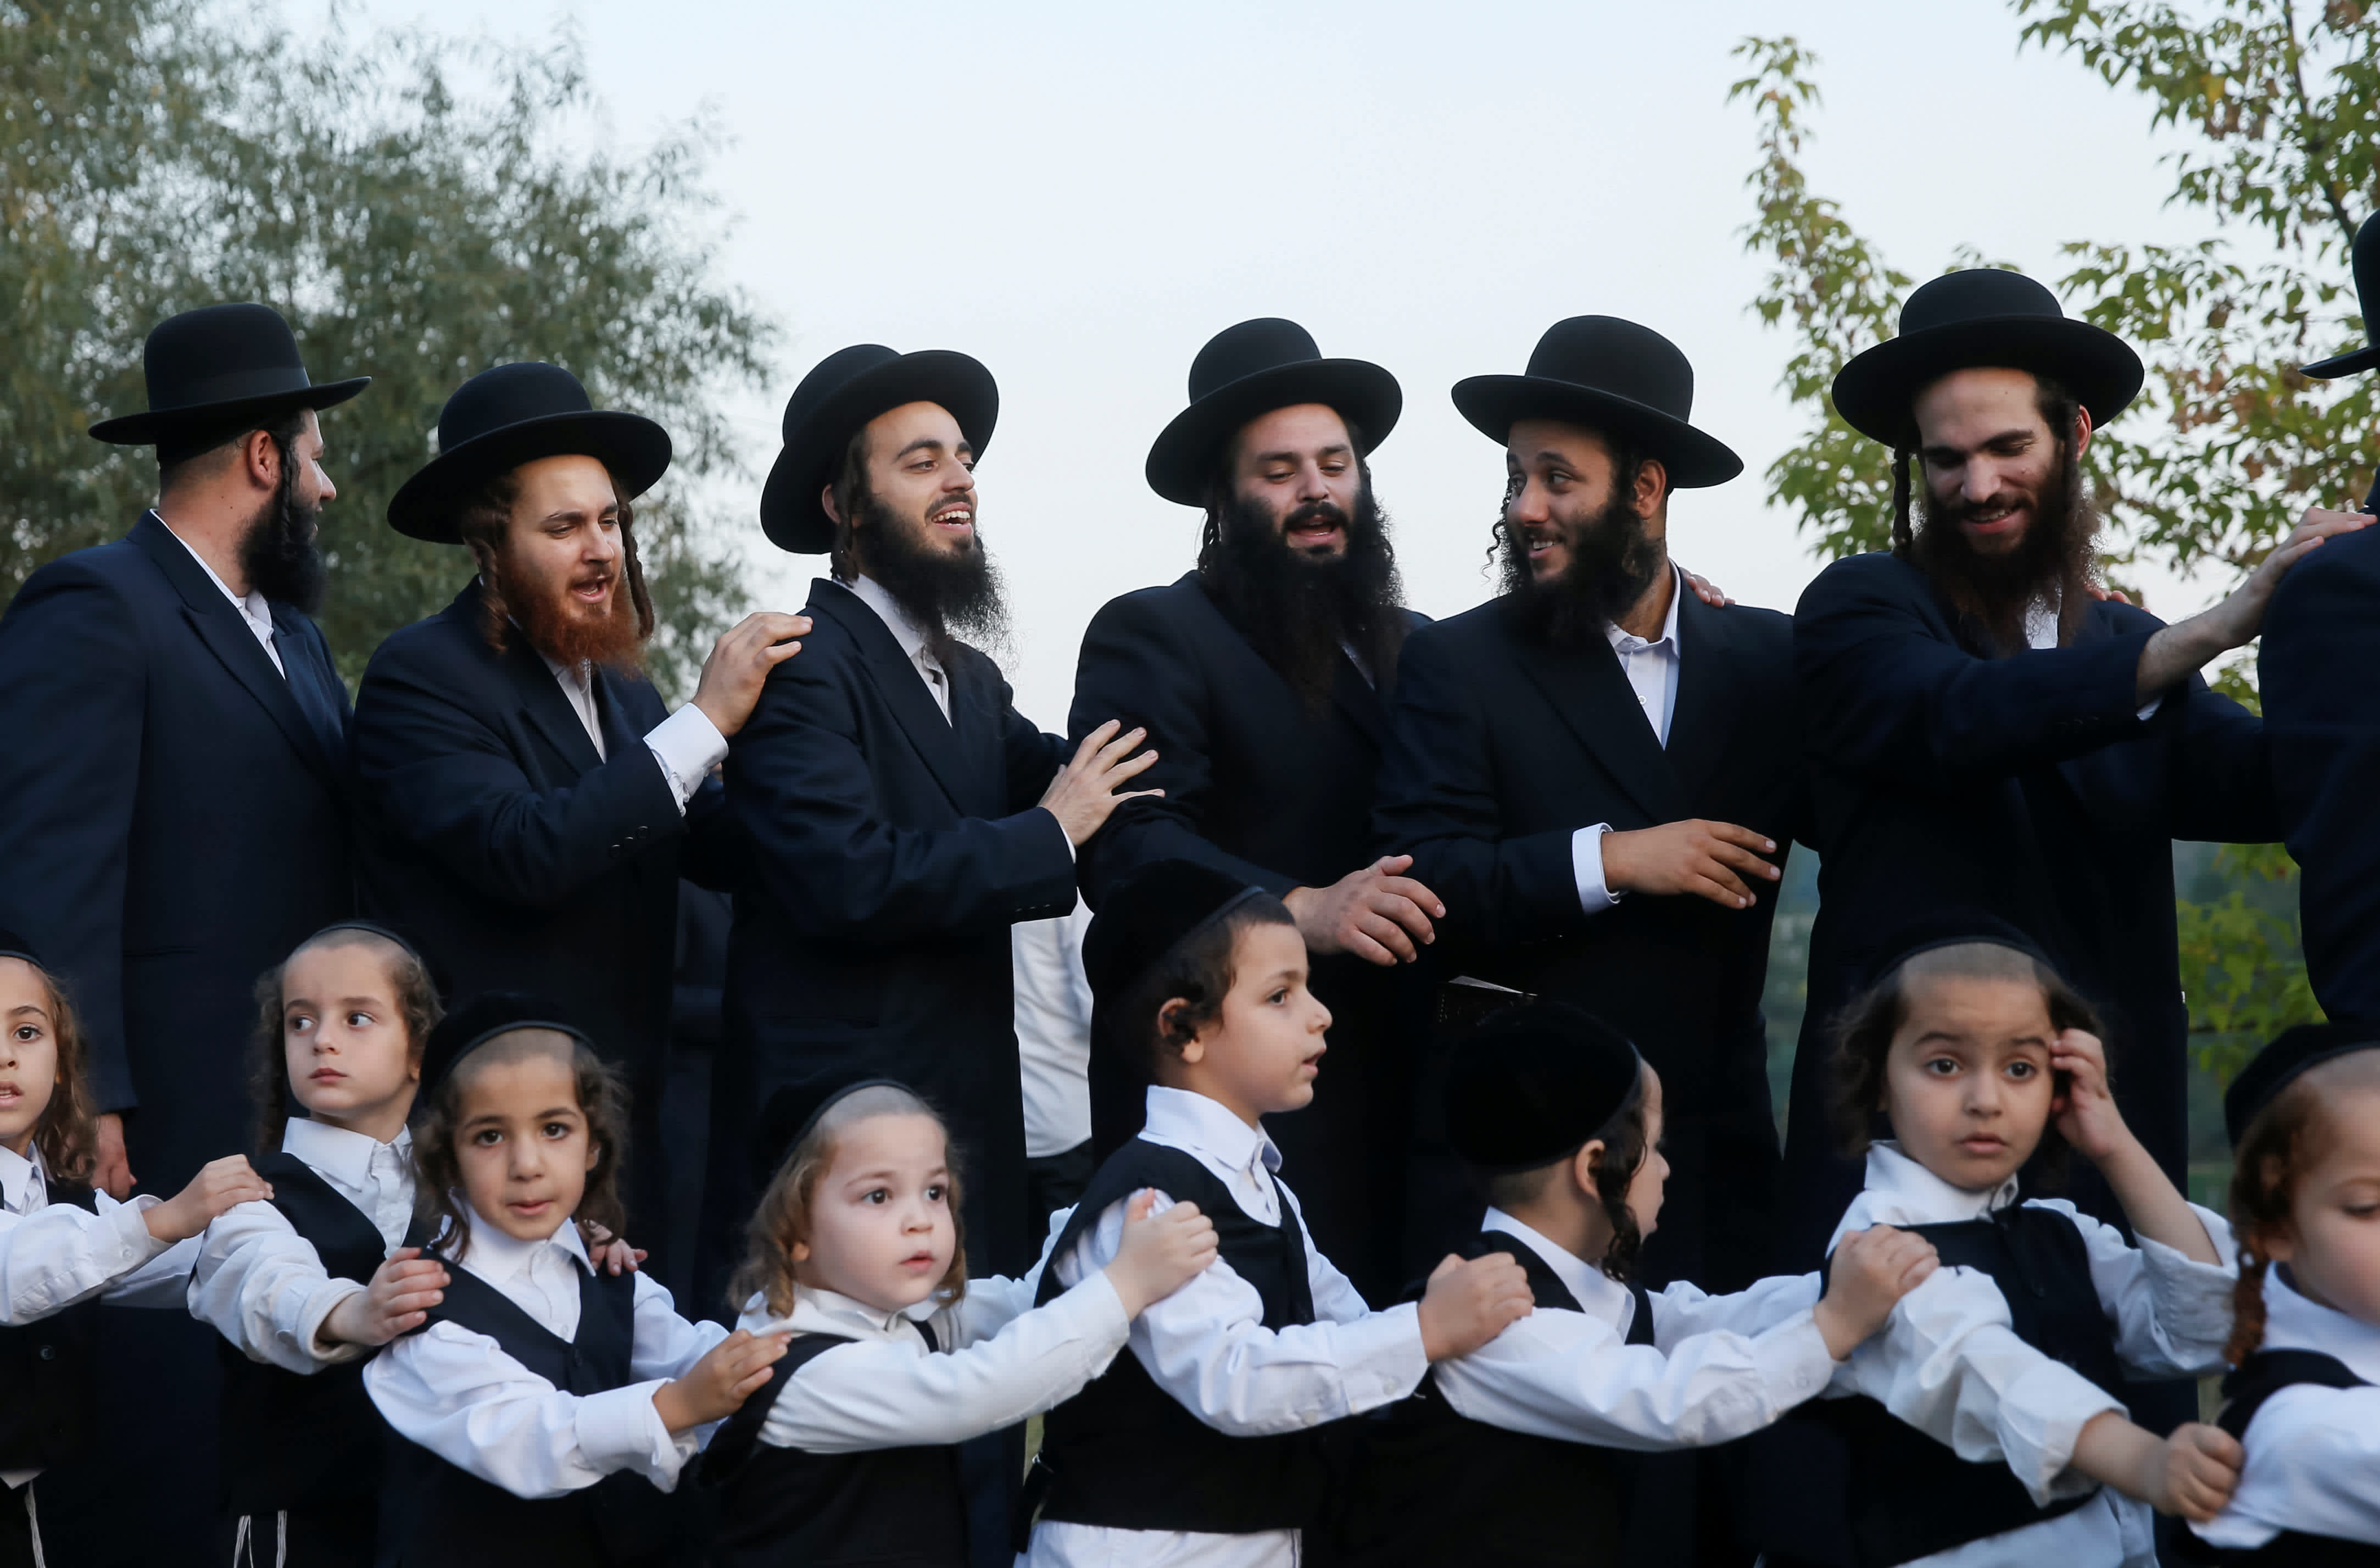 Ultra-Orthodox Jewish pilgrims dance on a bank of a lake near the tomb of Rabbi Nachman of Breslov during the celebration of Rosh Hashana holiday, the Jewish New Year, in Uman, Ukraine, September 21, 2017. (Reuters)